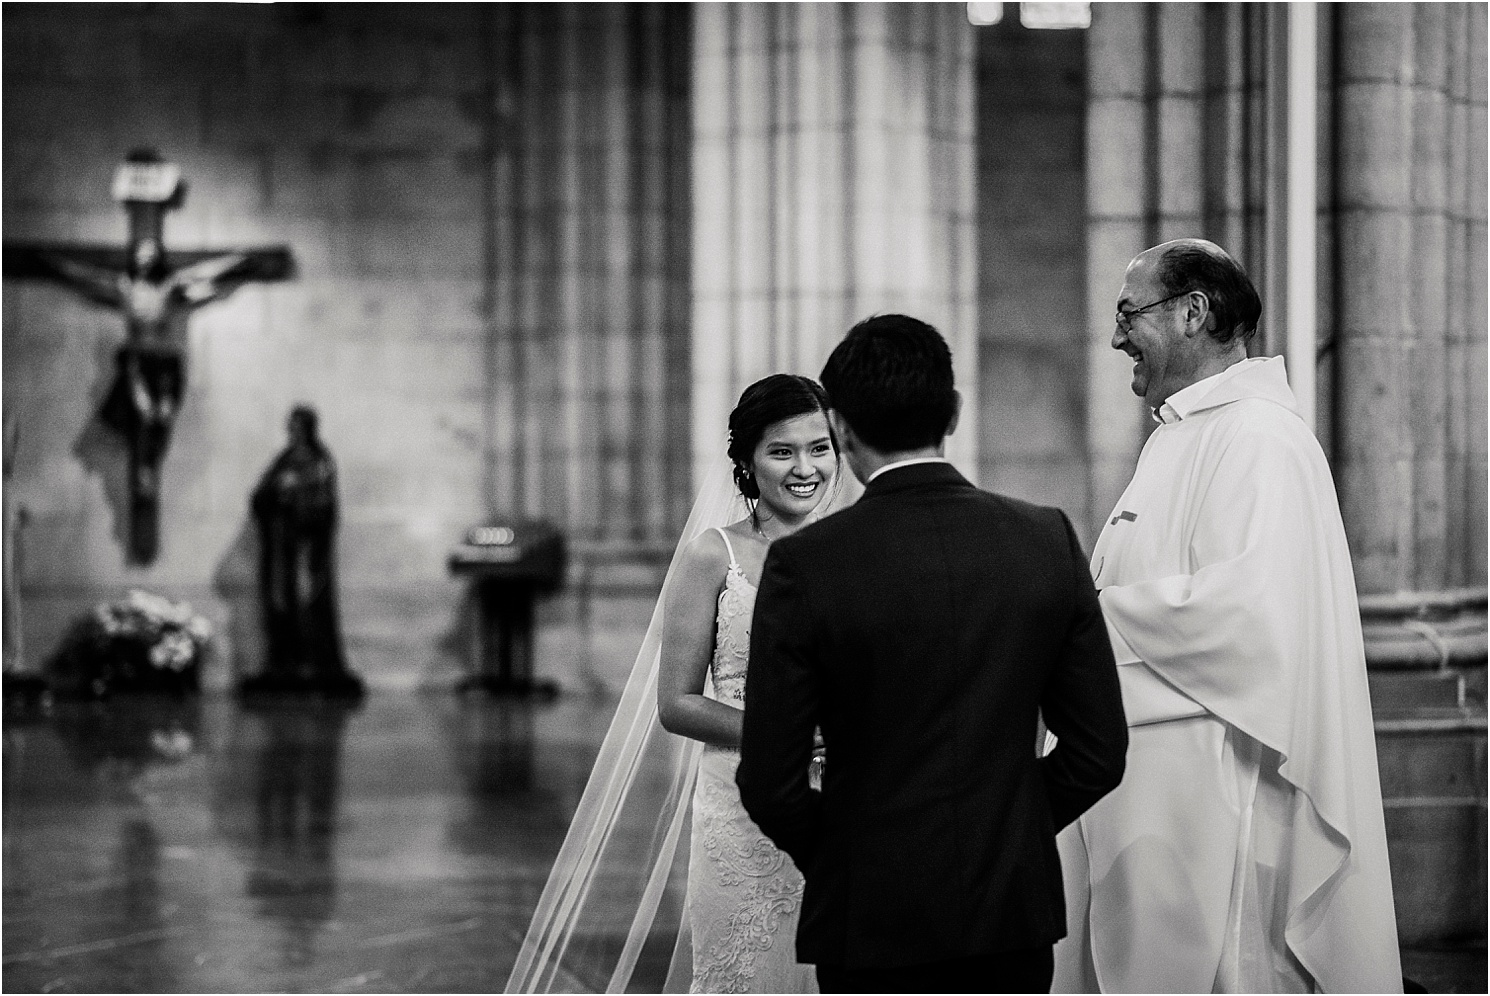 Destination wedding photographer San Sebastian - Destiantion wedding Donostia San Sebastián - Best photographer Basque country_-27.jpg